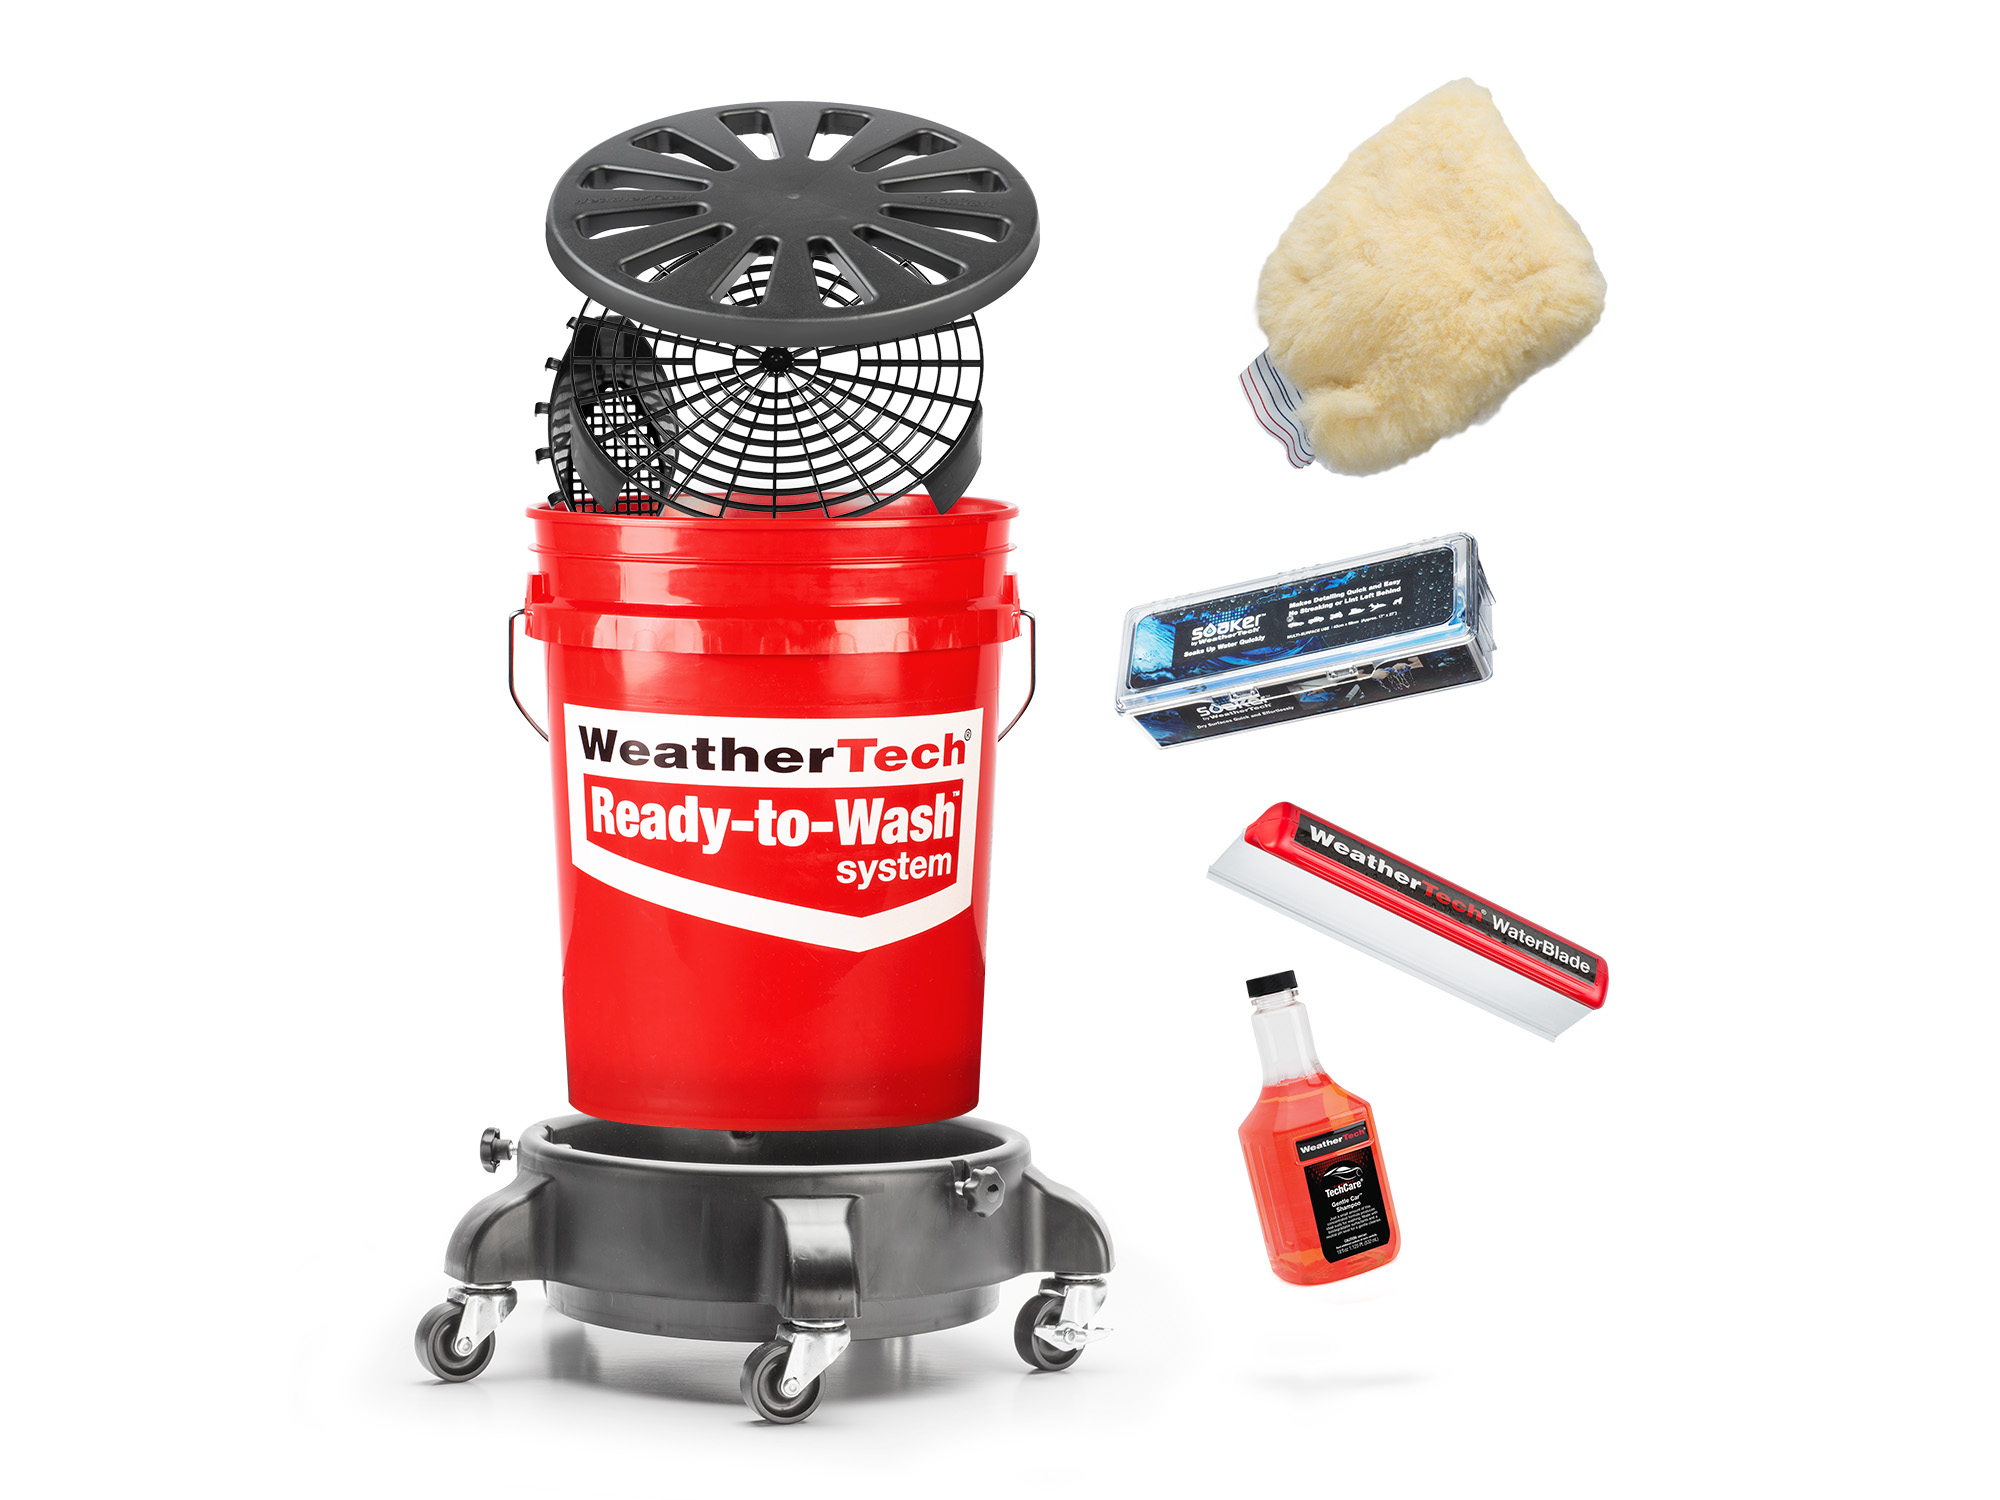 Content of Ready to Wash kit showing bucket, MittSaver, and WaterBlade.